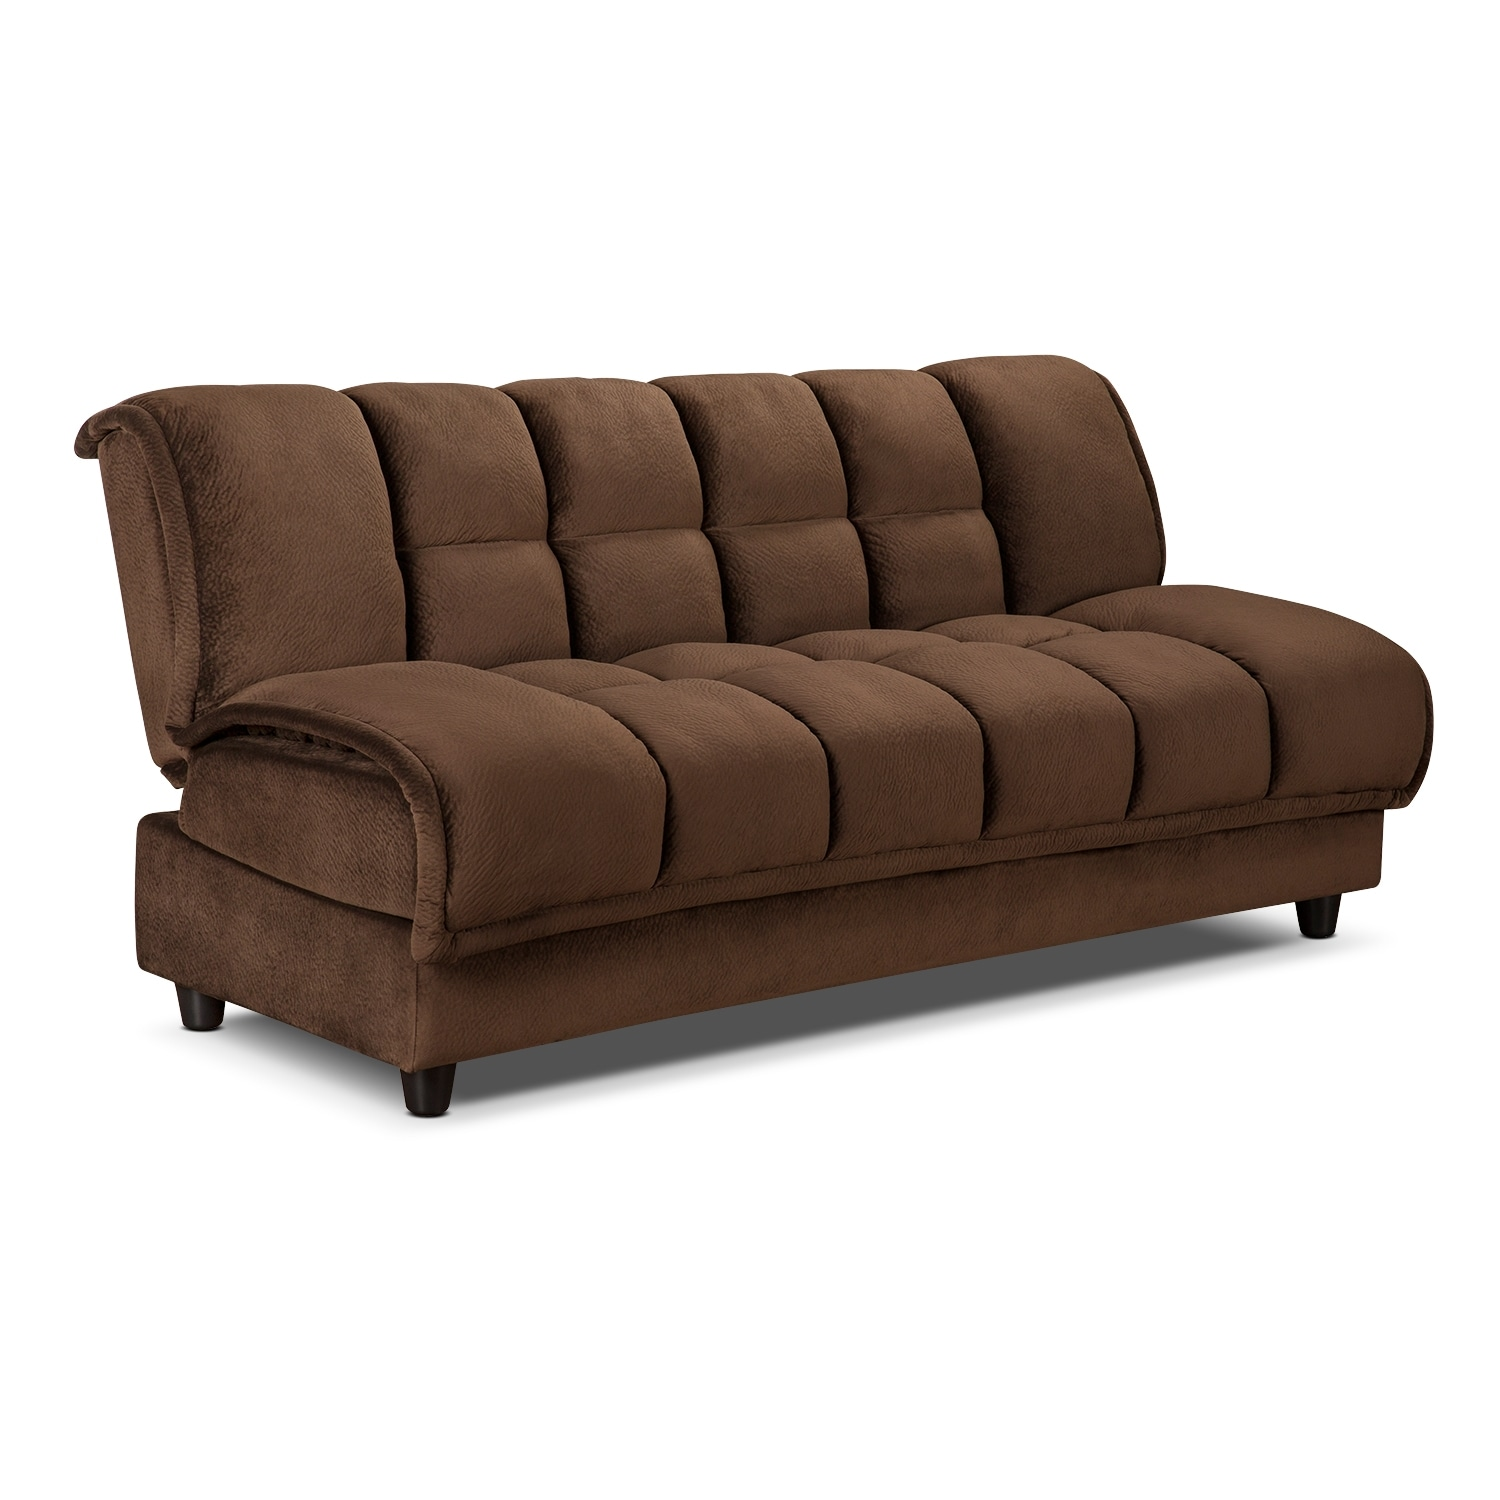 Bennett futon sofa bed value city furniture for Sofa becomes bed